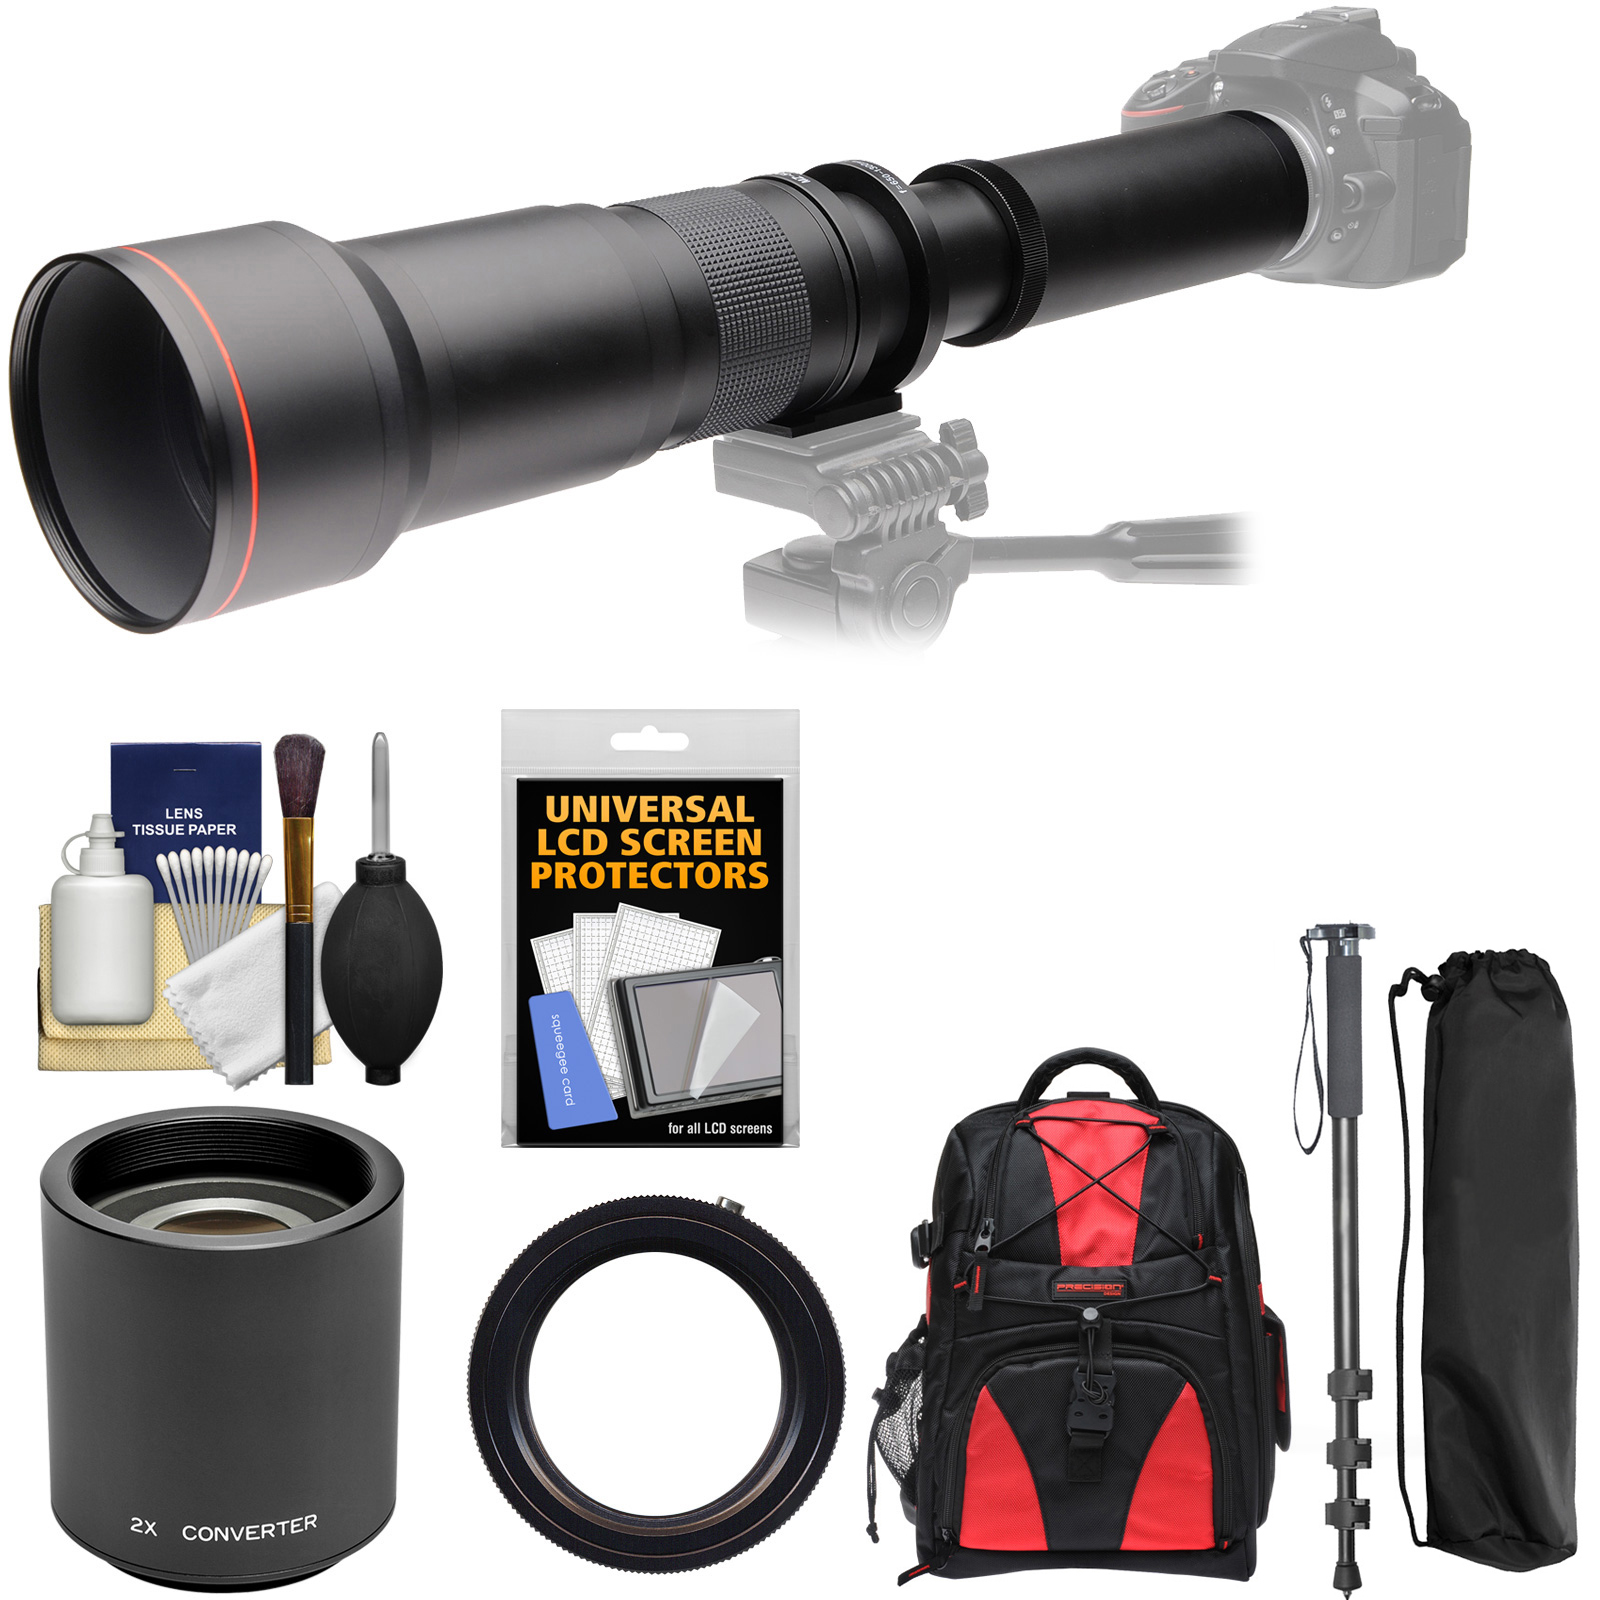 Vivitar 650-1300mm f/8-16 Telephoto Lens with 2x Teleconverter (=2600mm) + Monopod + Backpack + Filter Kit for Canon EOS Rebel SL1, T3, T3i, T5, T5i, 70D, 6D, 7D 5D Mark II III Cameras